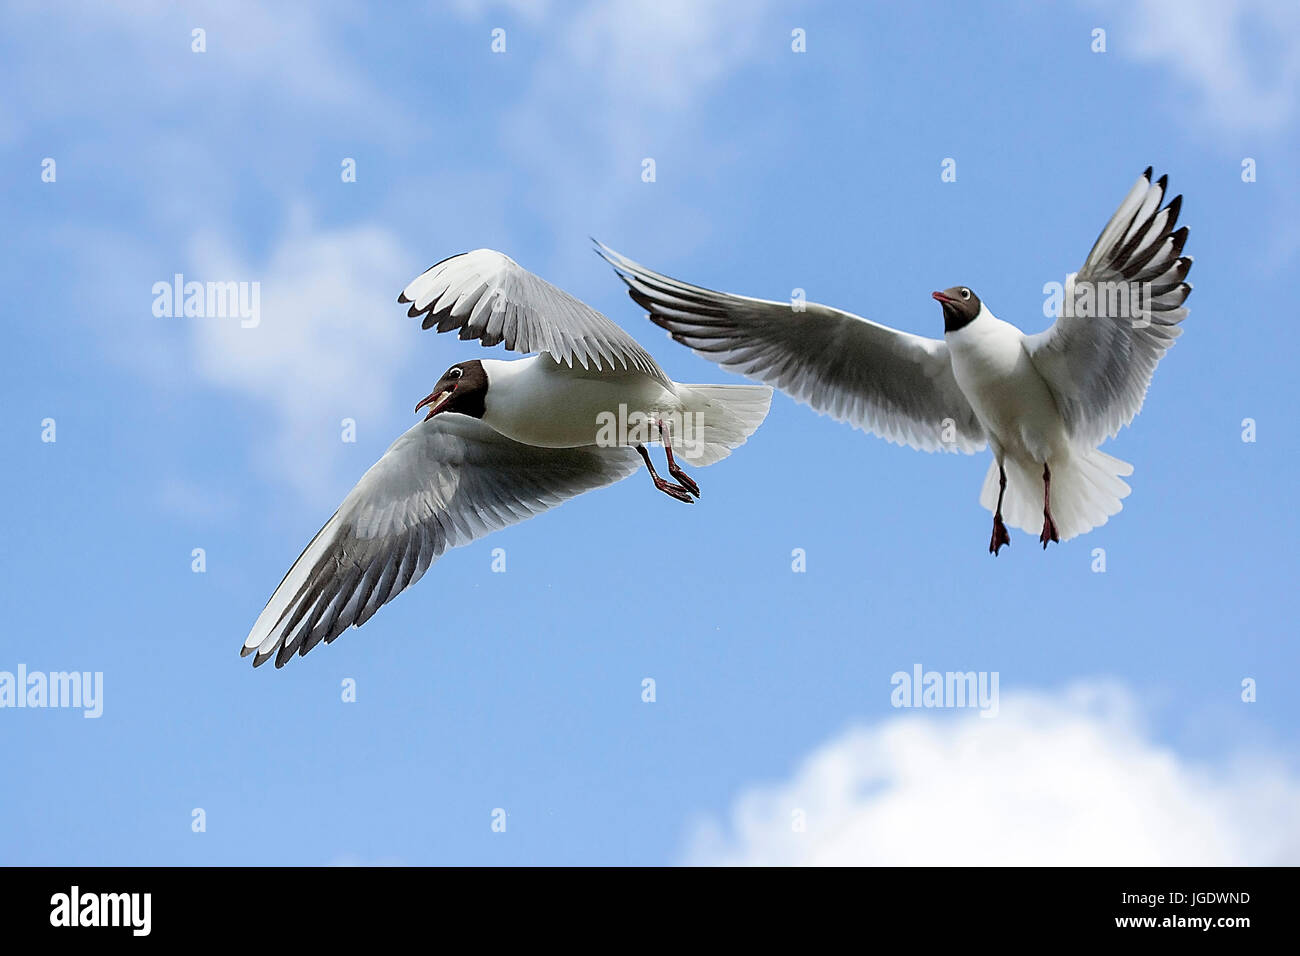 Black-headed gull, Larus ridibundus, Lachmoewe (Larus ridibundus) - Stock Image